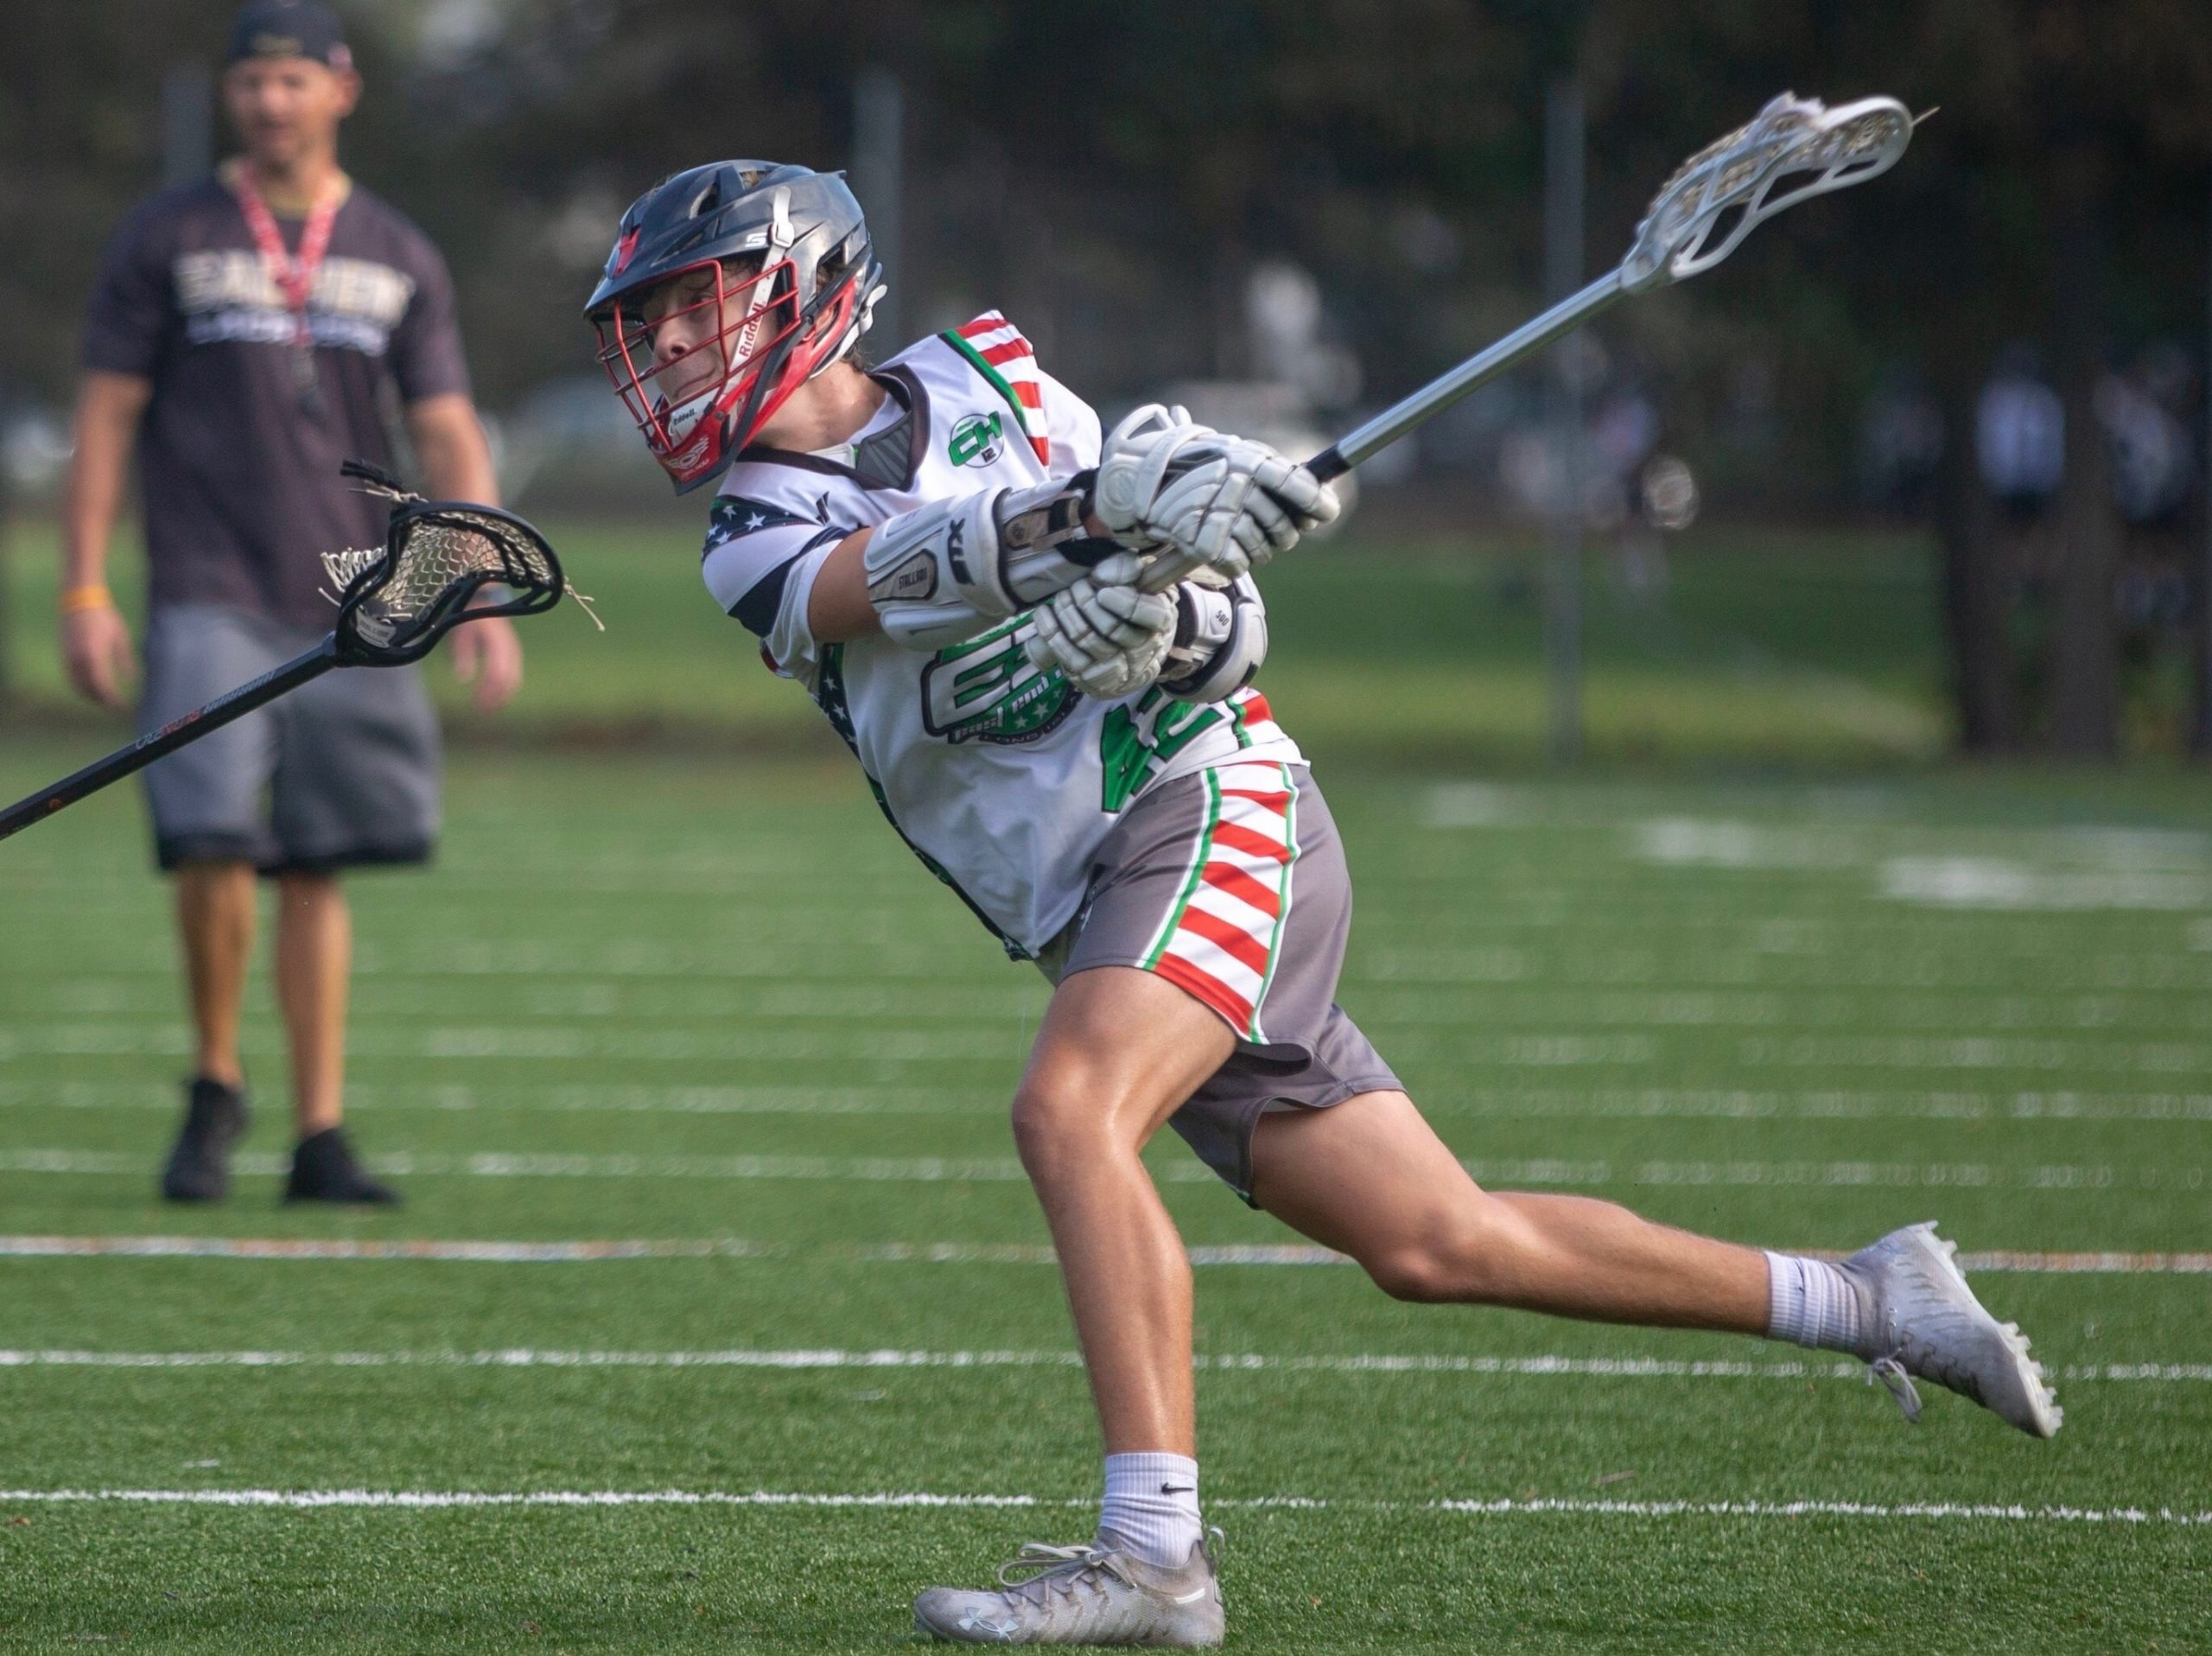 Owen Duffy in action for E3, a club team based in Westhampton.